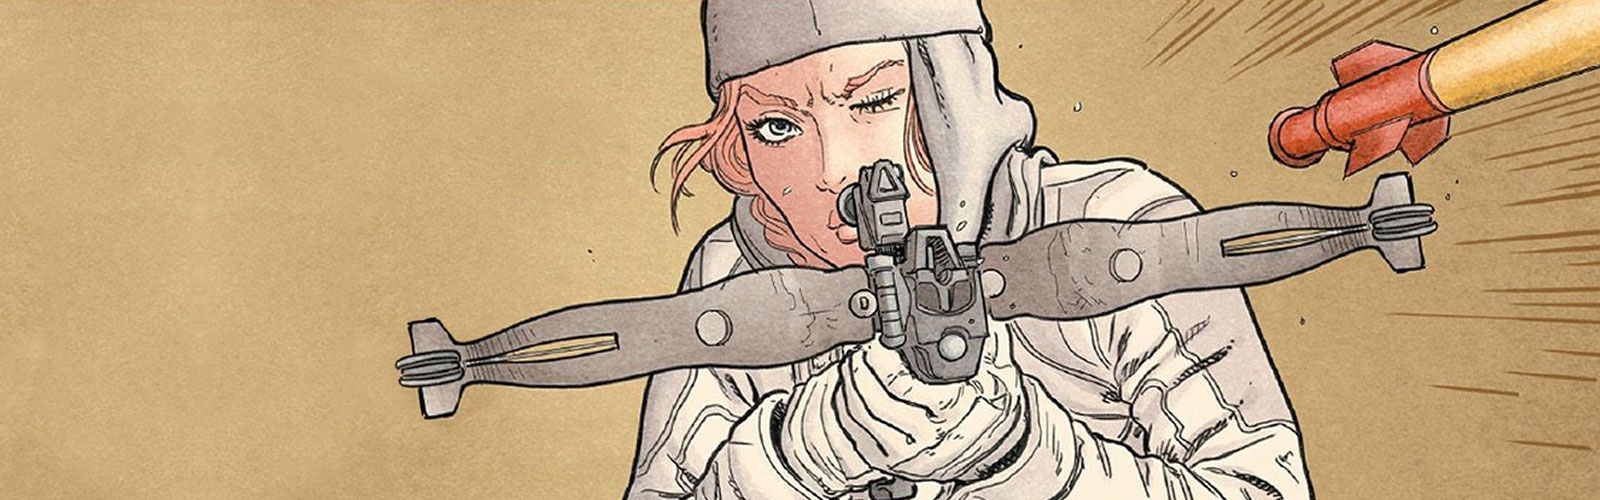 New Releases - 01-07-15: We Stand On Guard